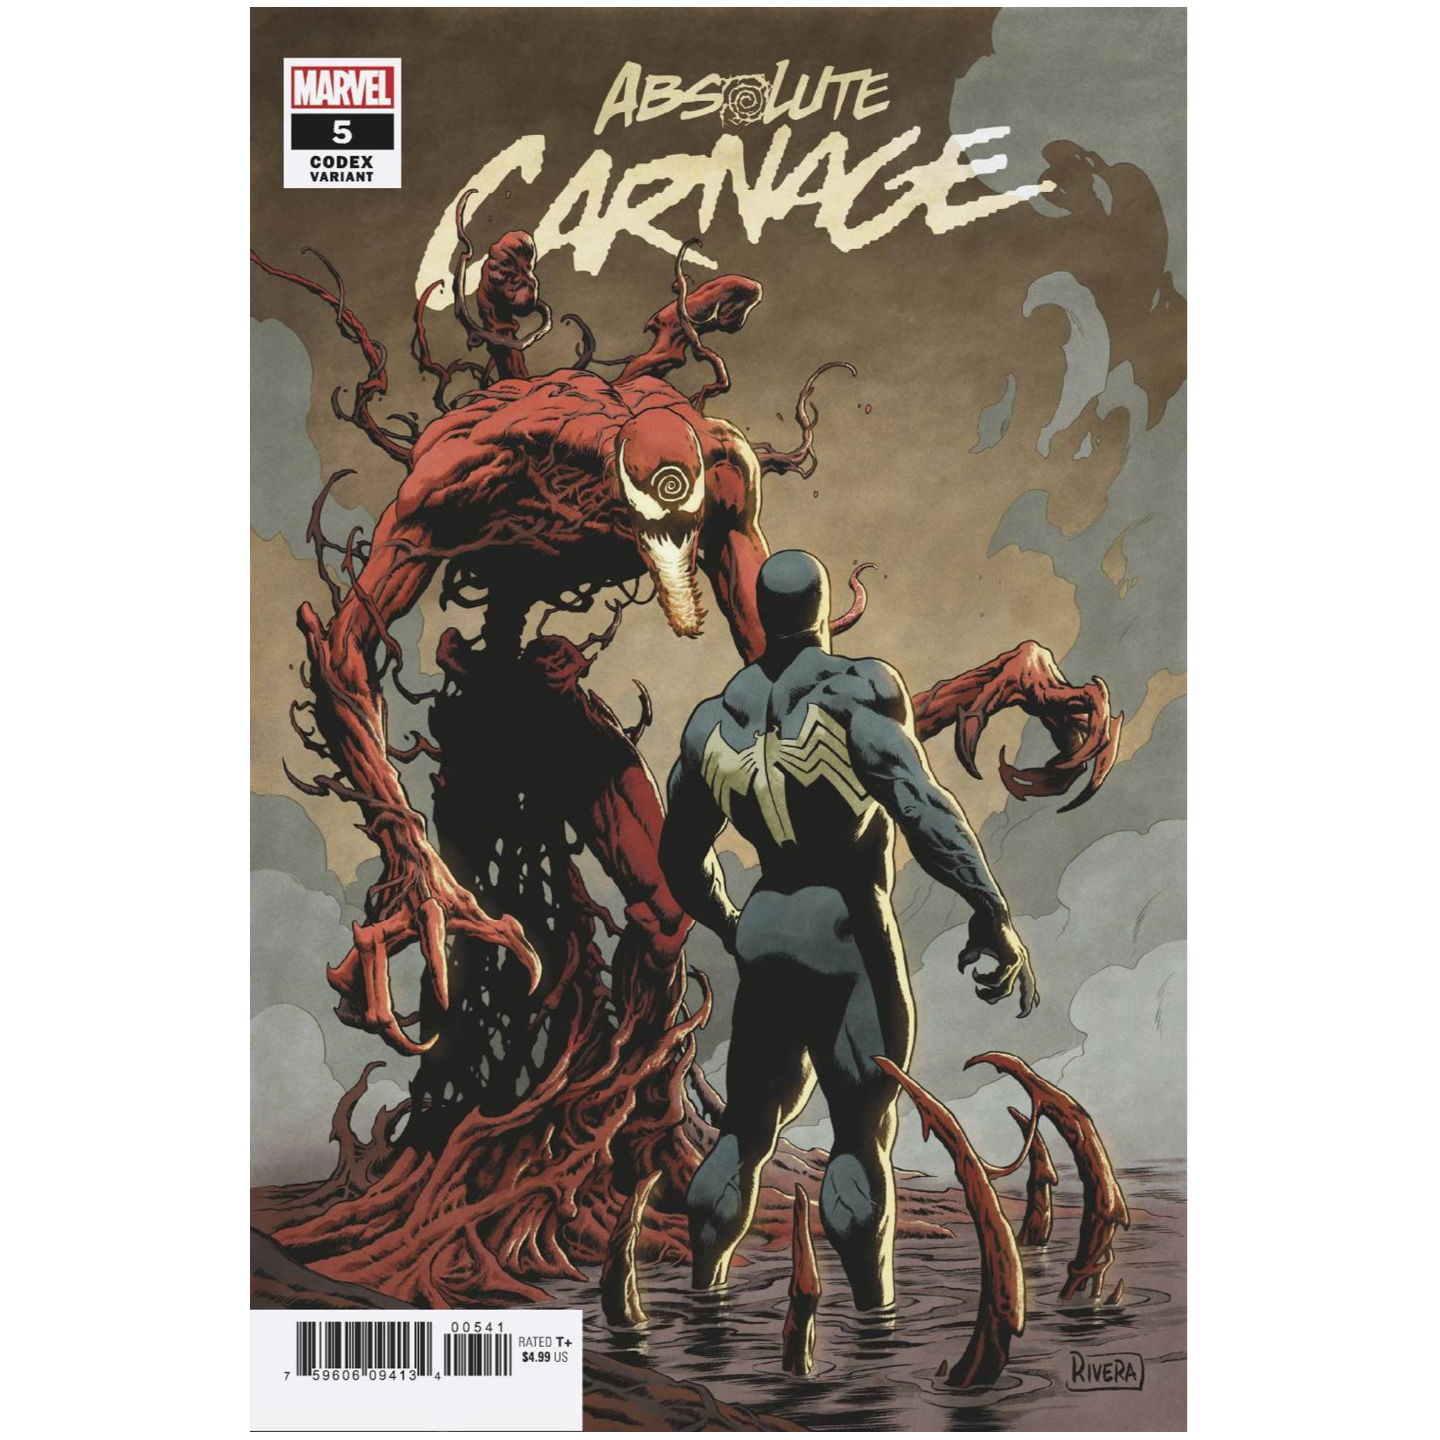 ABSOLUTE CARNAGE #5 - RIVERA CODEX VAR AC